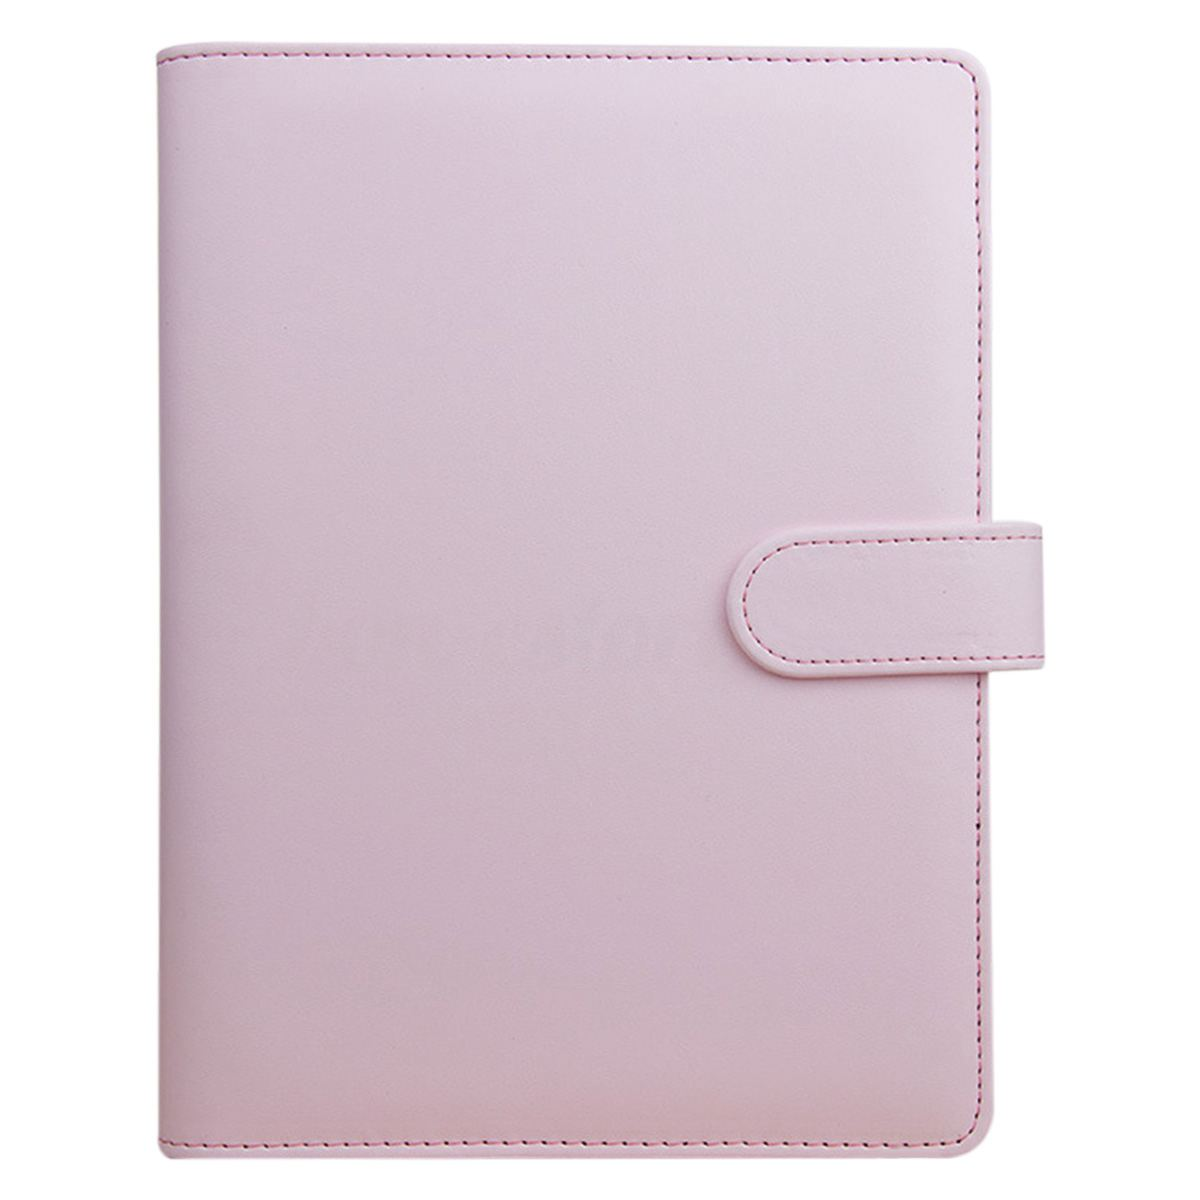 A5 Weekly Monthly Planner Diary Classic Loose-Leaf-Ring-Binder Notebook Cover, Pink a5 planner agenda pu loose leaf weekly monthly journal diary notebook blue